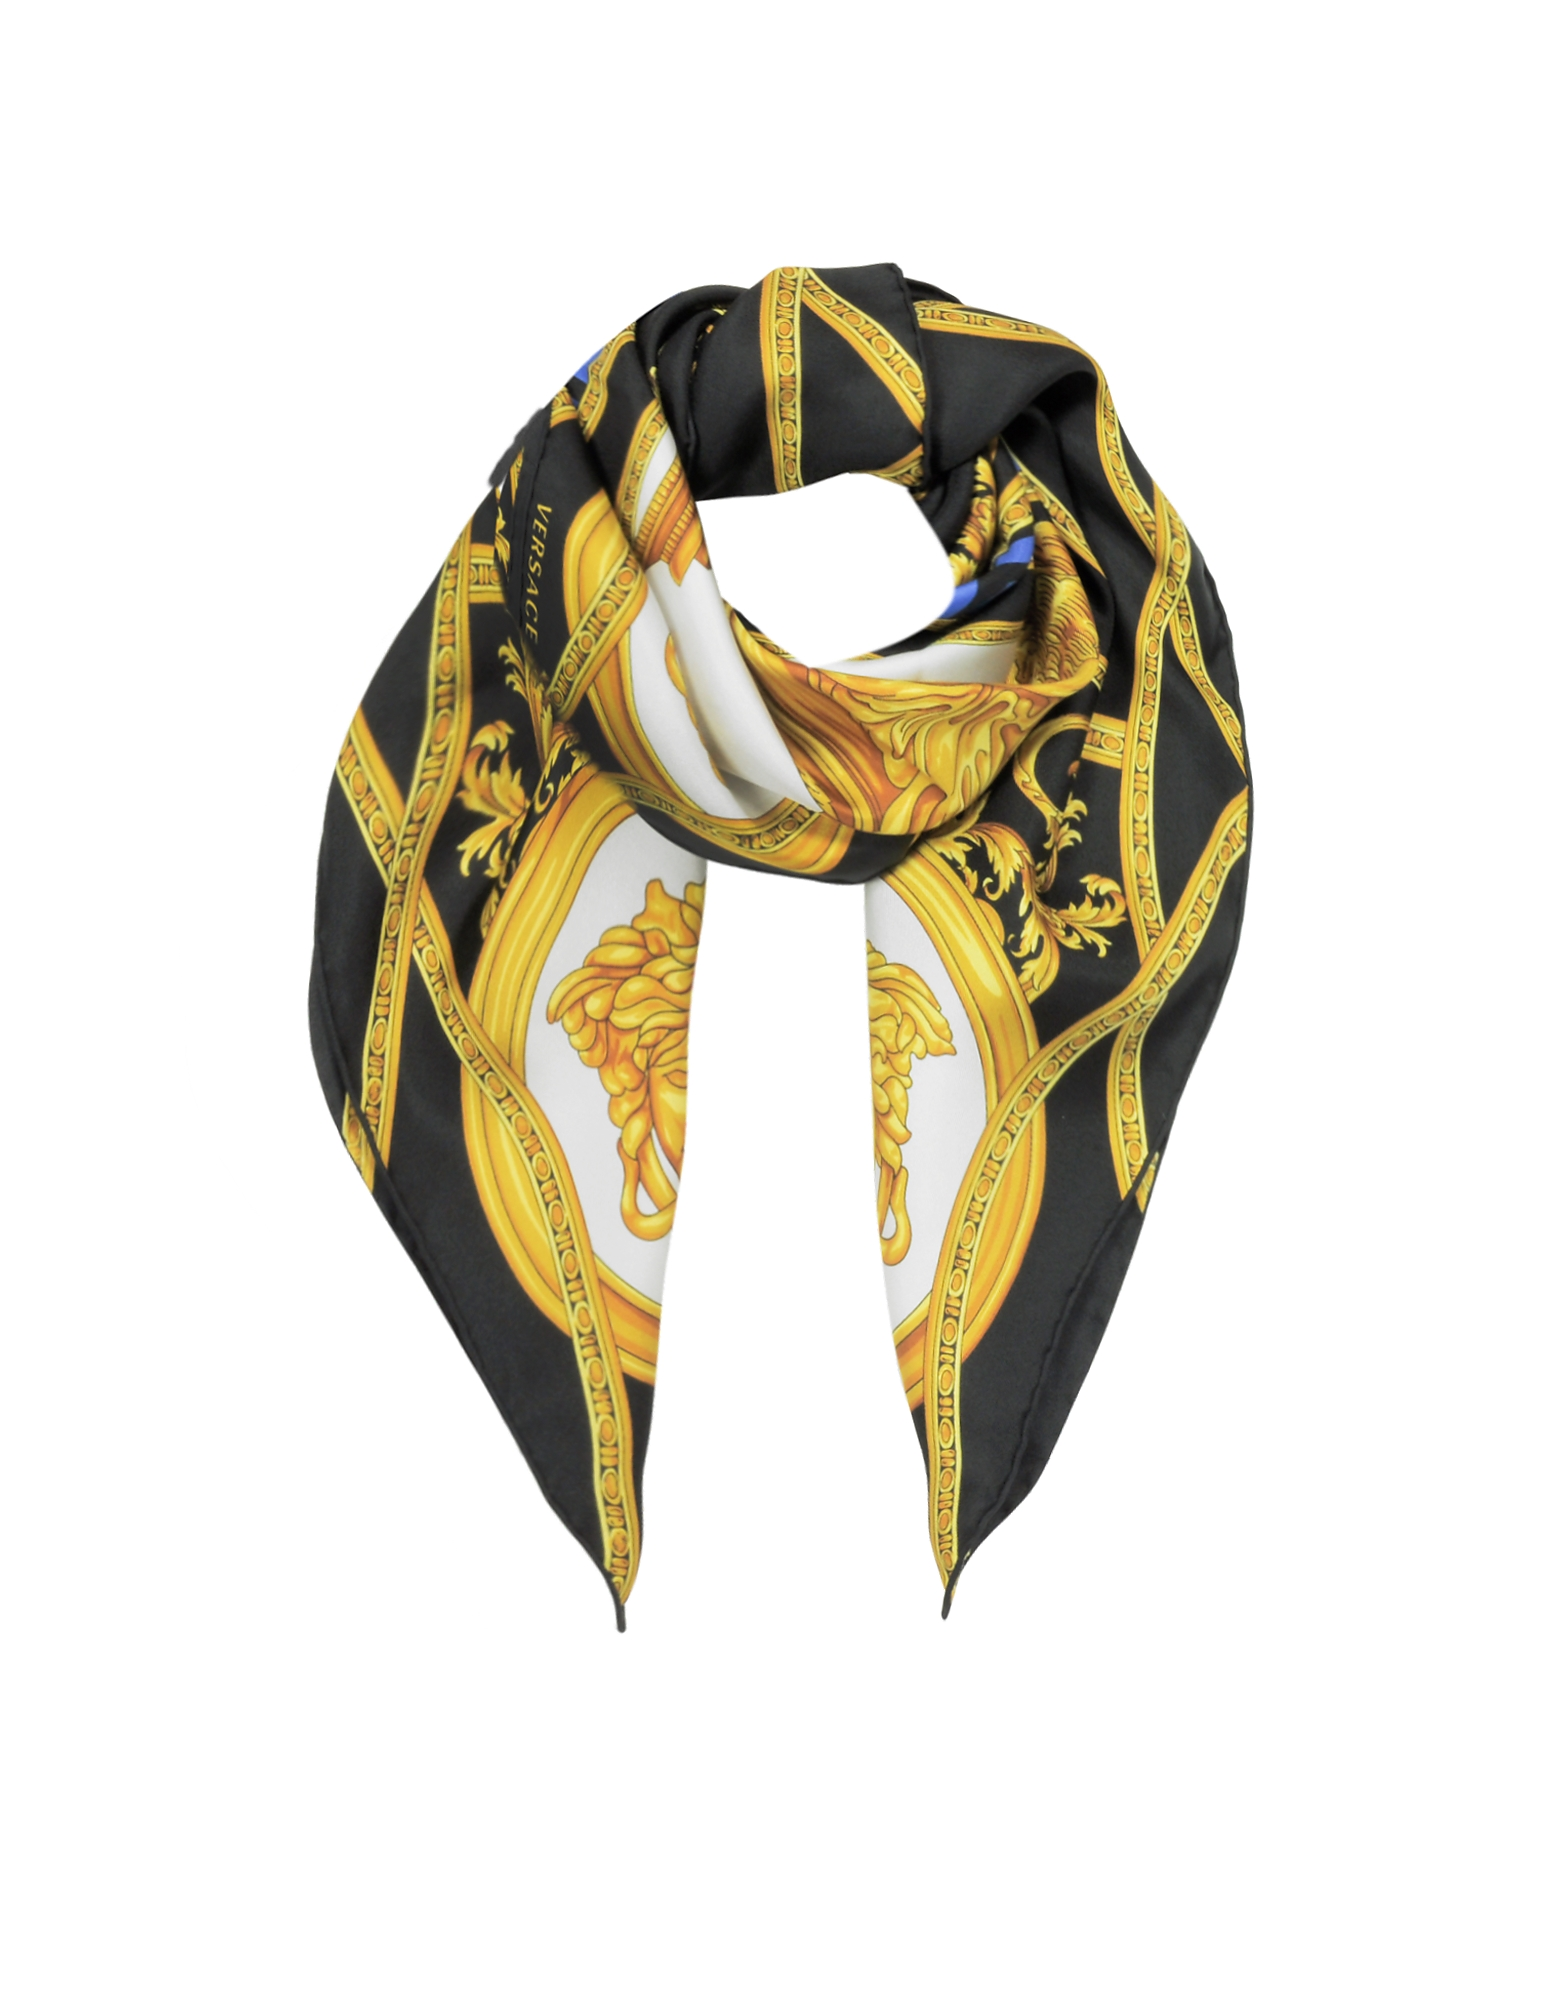 La Coupe Des Dieux Black and Gold Twill Silk Square Scarf